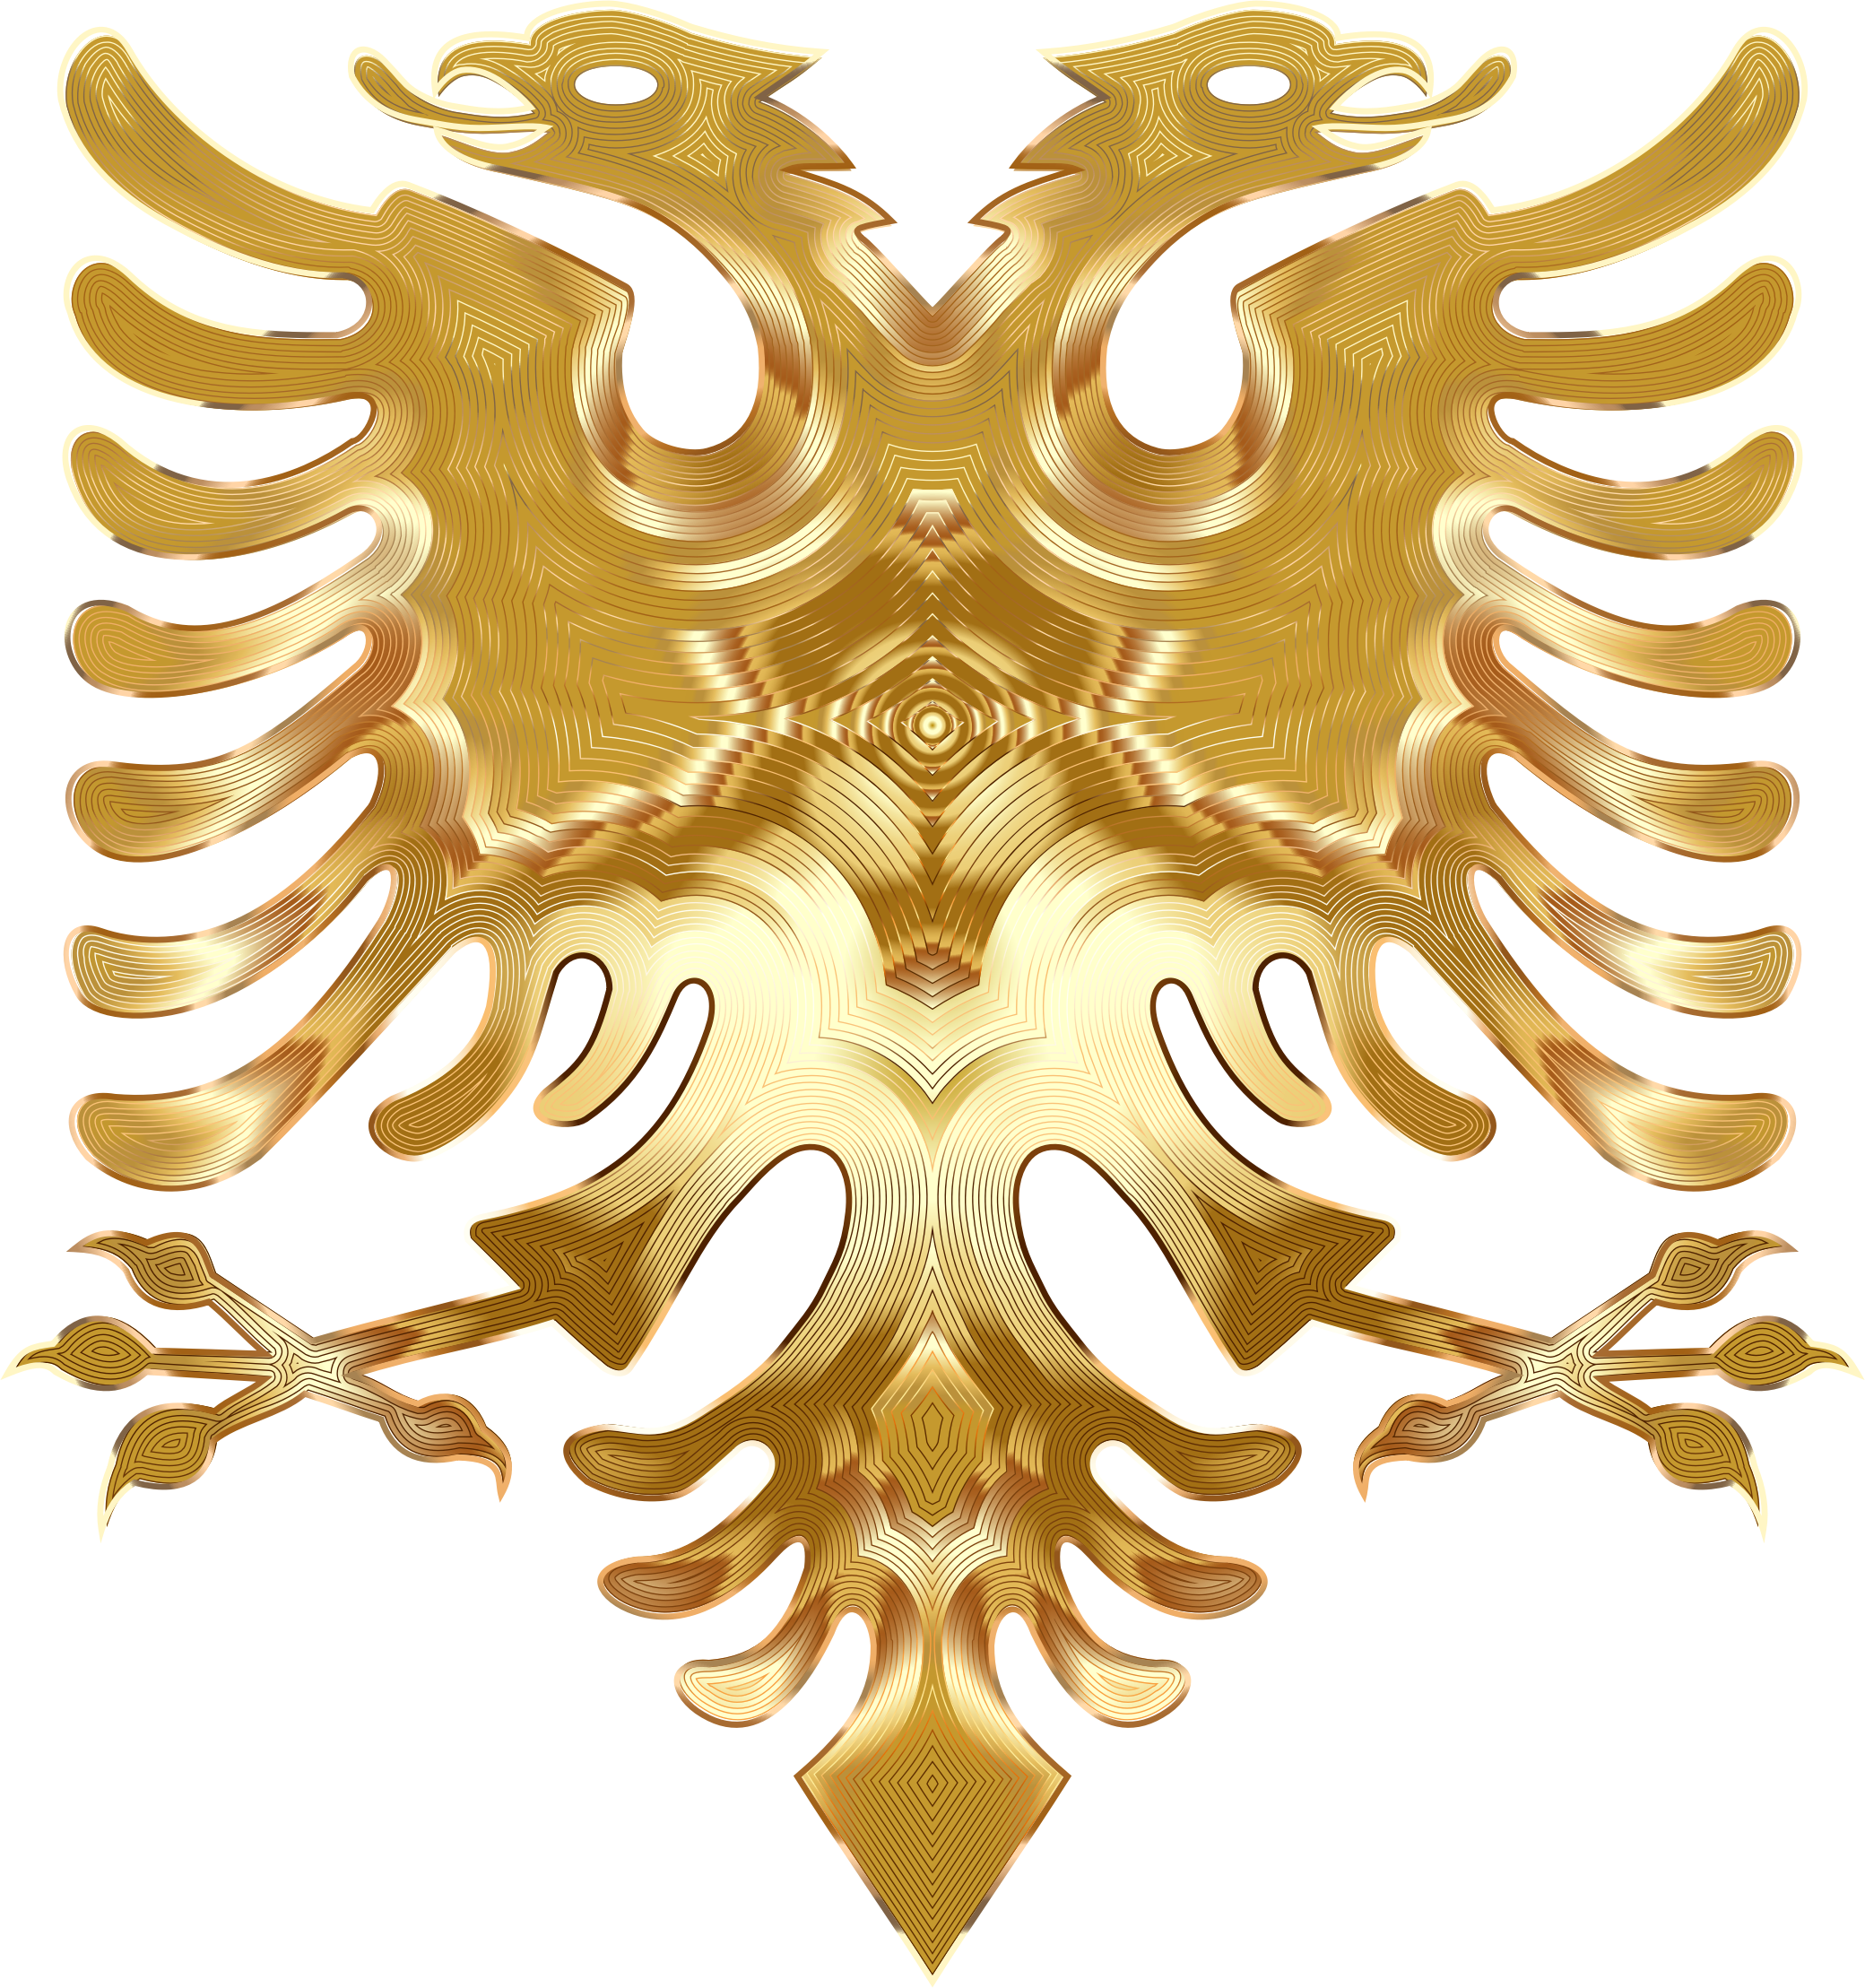 Golden Double Headed Eagle by GDJ